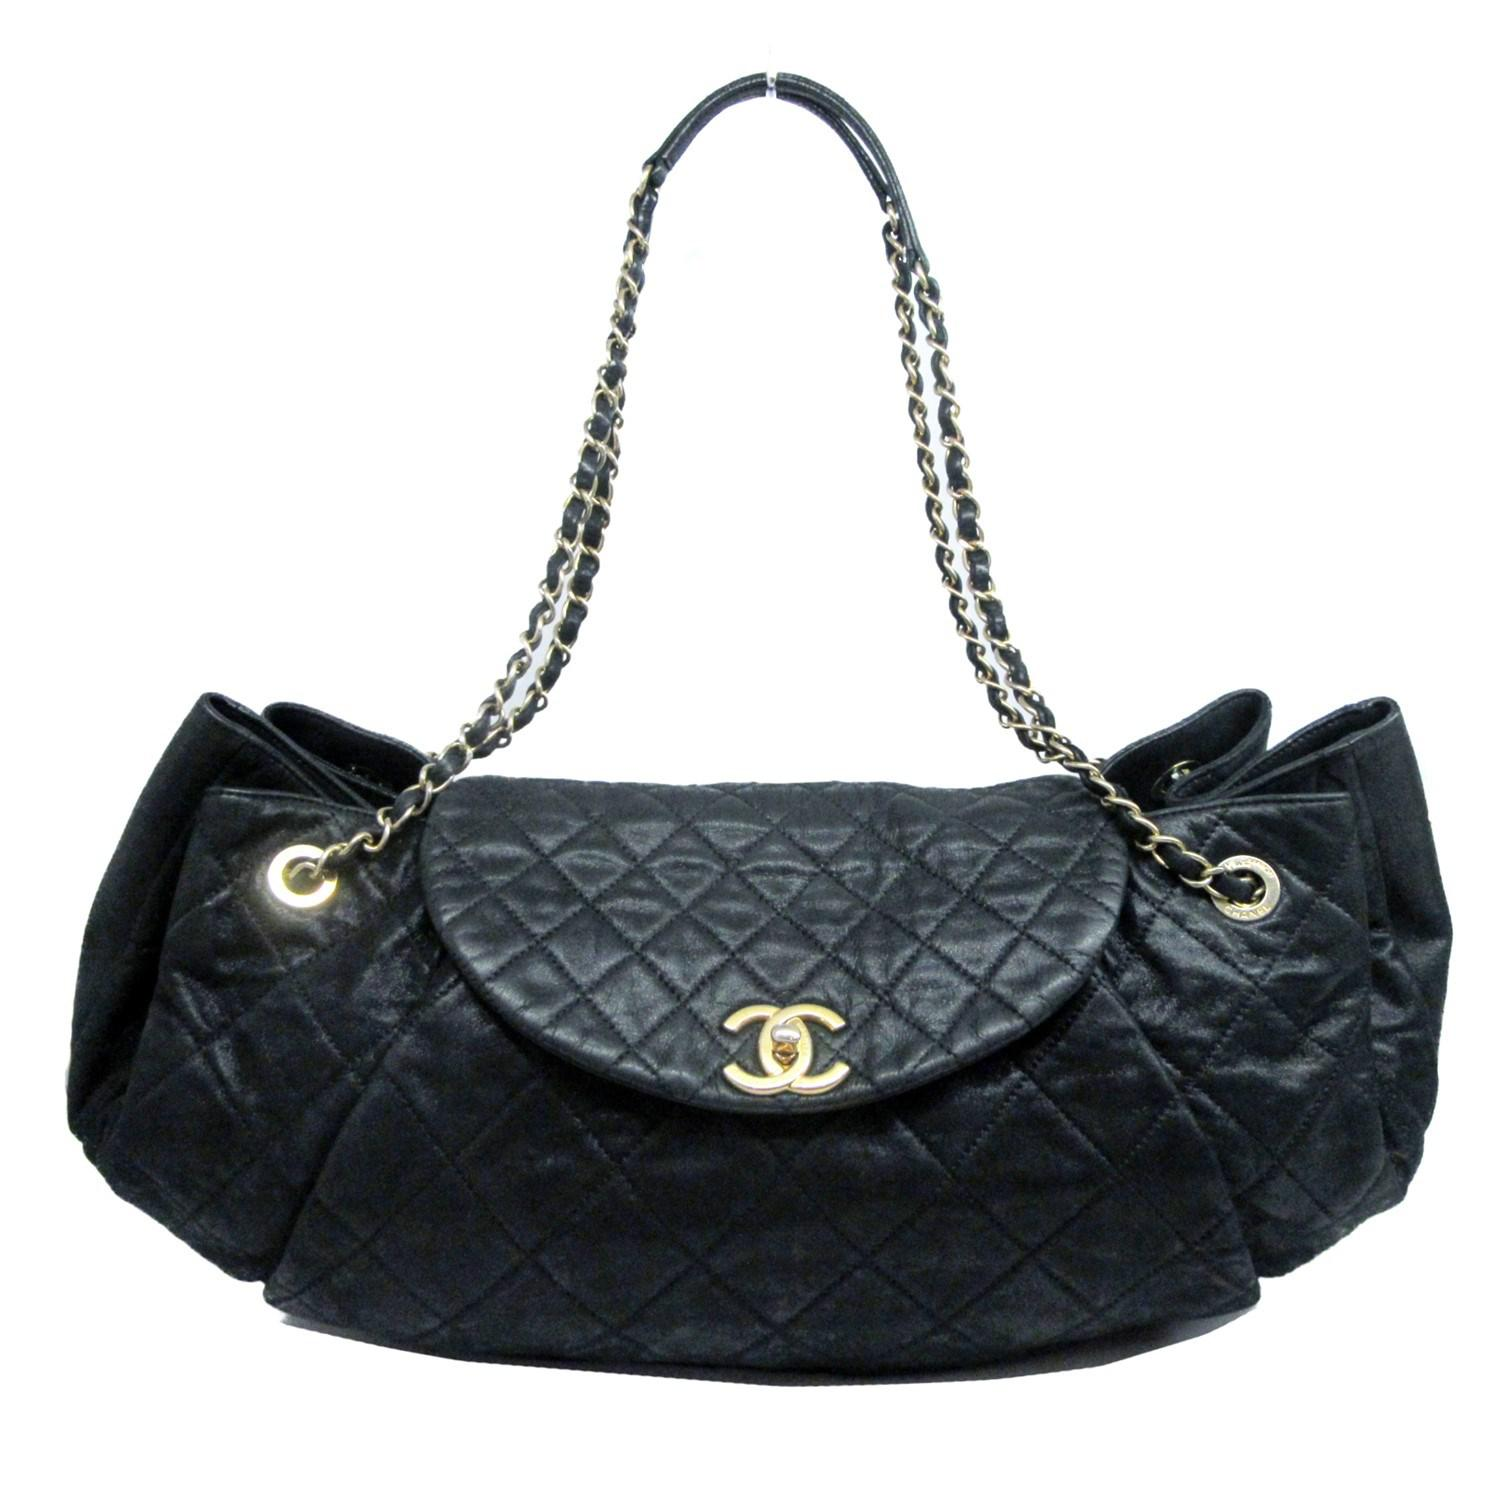 1781845d670f Lyst - Chanel Auth Quilted Chain Shoulder Tote Bag Black Leather ...